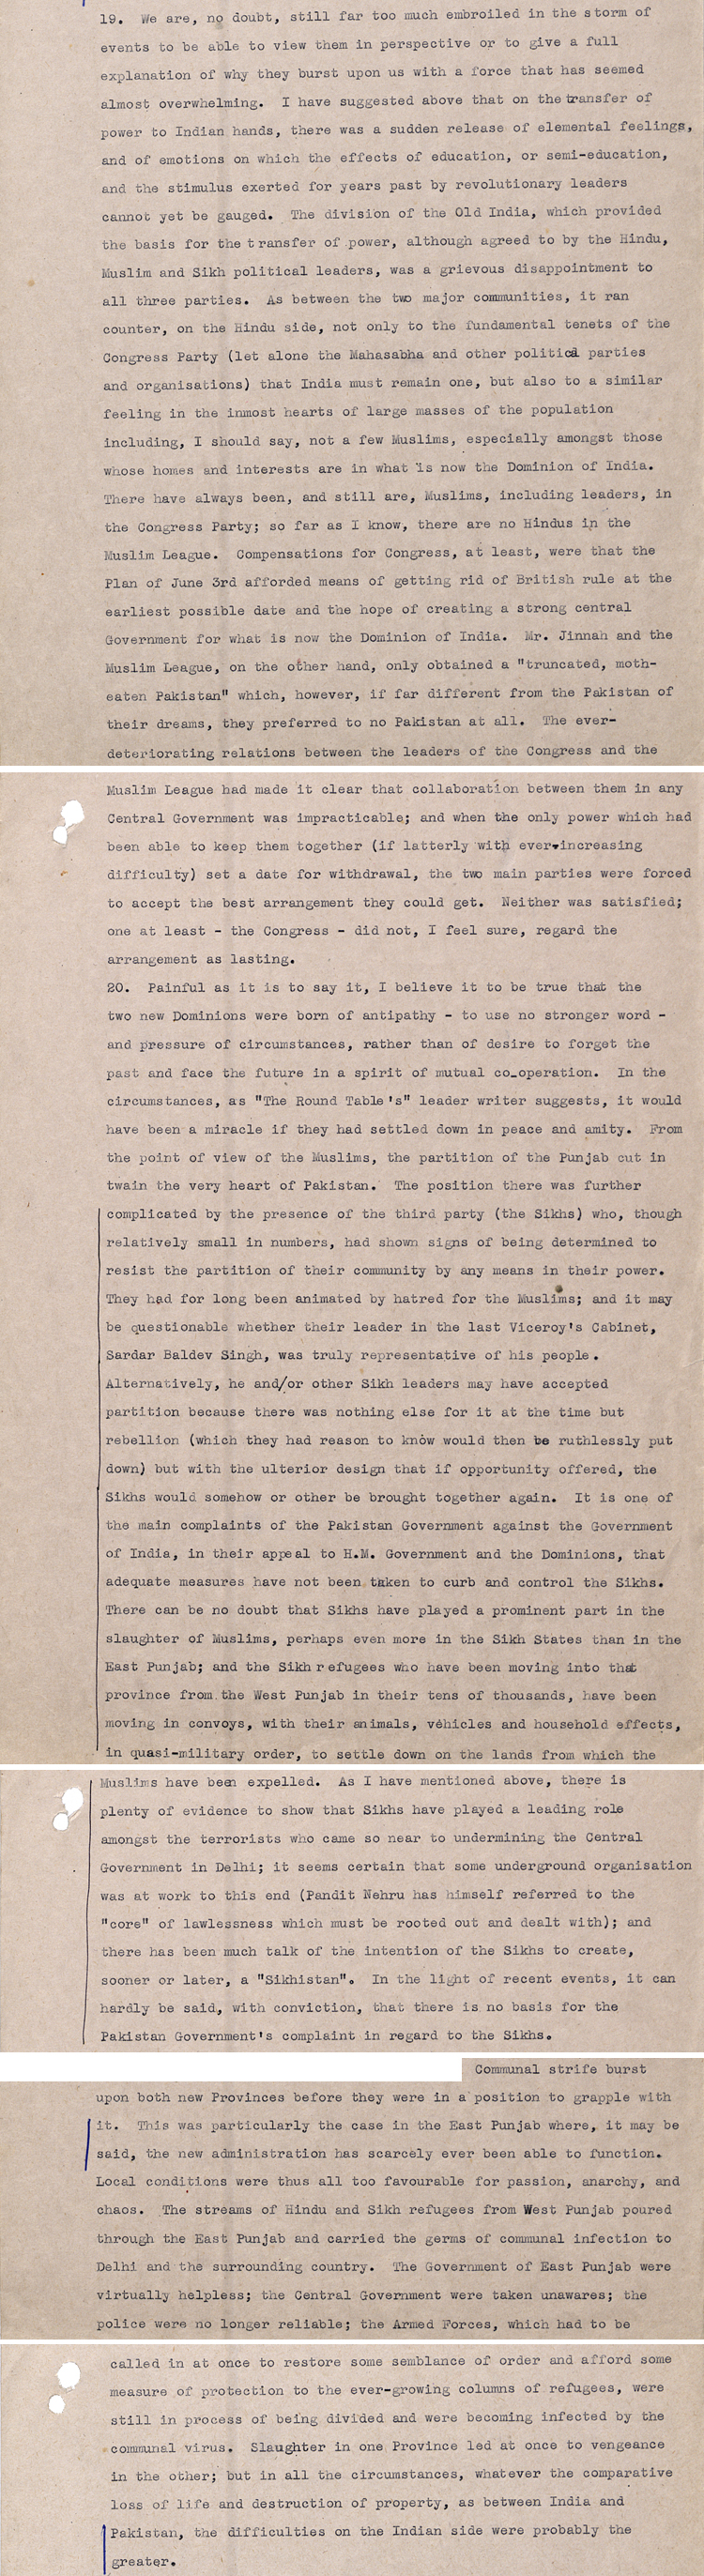 UK High Commissioner Terence Shone writing to the Secretary of State for Commonwealth Relations, 14 October 1947 (DO 142/259)